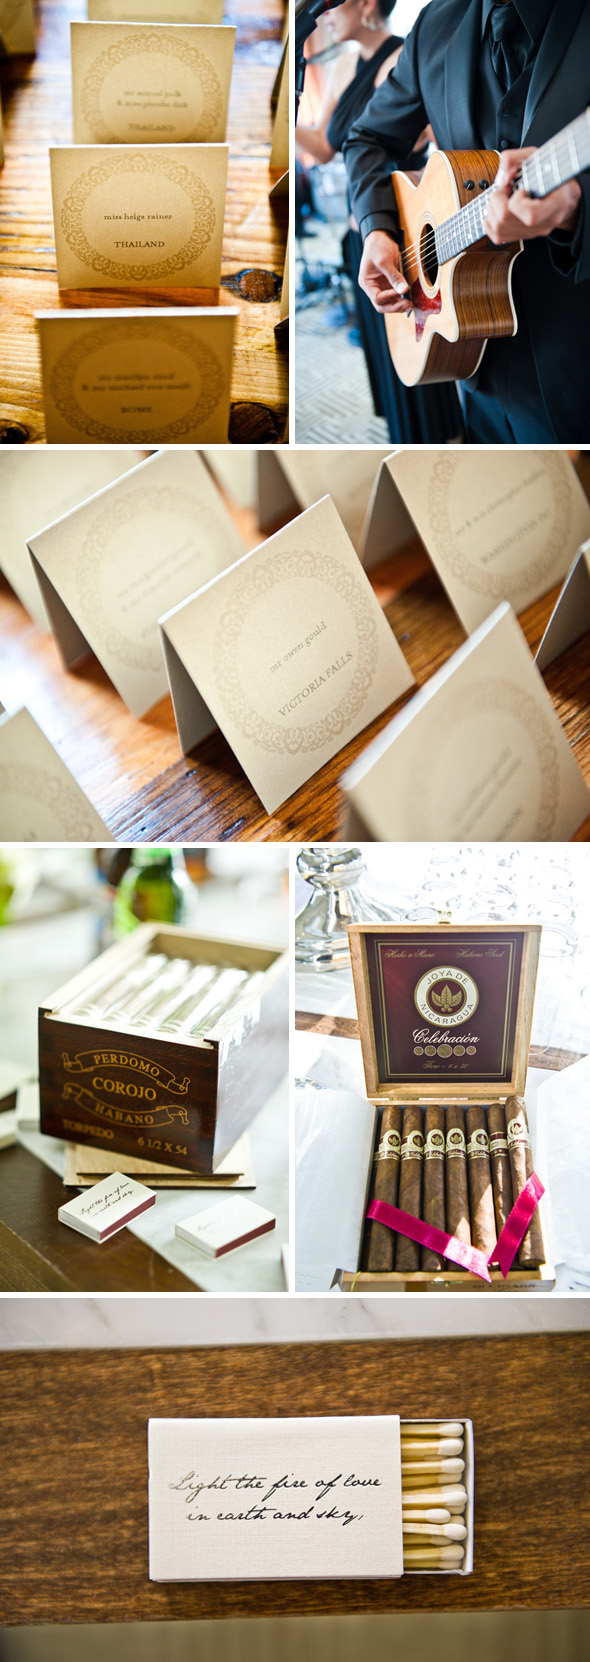 wedding cigar rollers Hay Adams, Washington DC Wedding